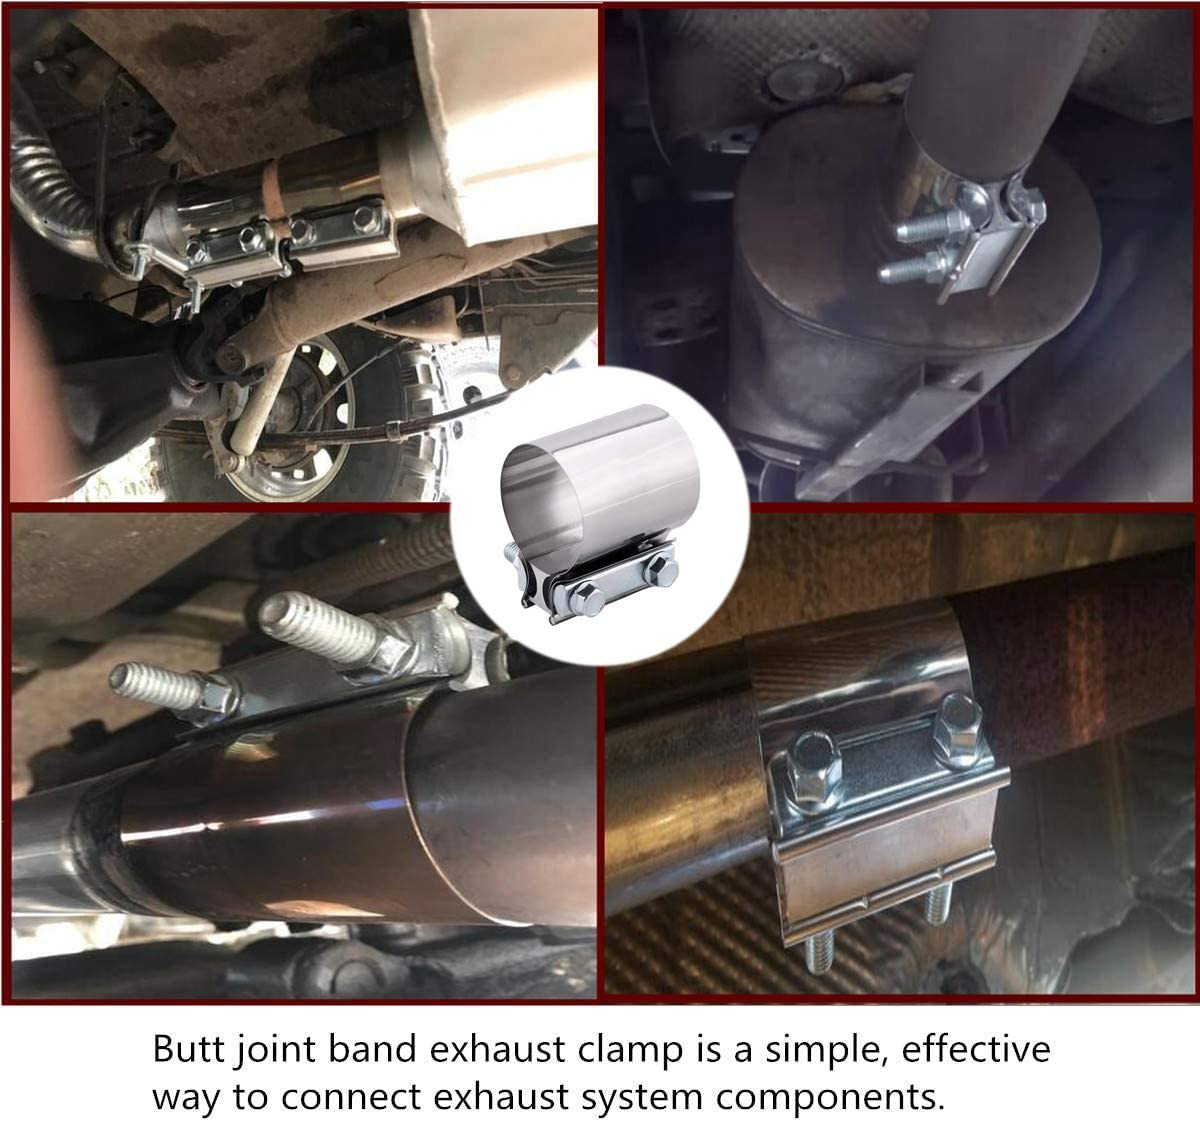 Exhaust Pipe Clamp 2.5 Inch Universal Car Exhaust Sleeve Lap Joint Band Clamp with Bolts for Pipe Fixing JatilEr 2 Pcs Exhaust Muffler Pipe Connector Stainless Steel U Shape Exhaust Clamp